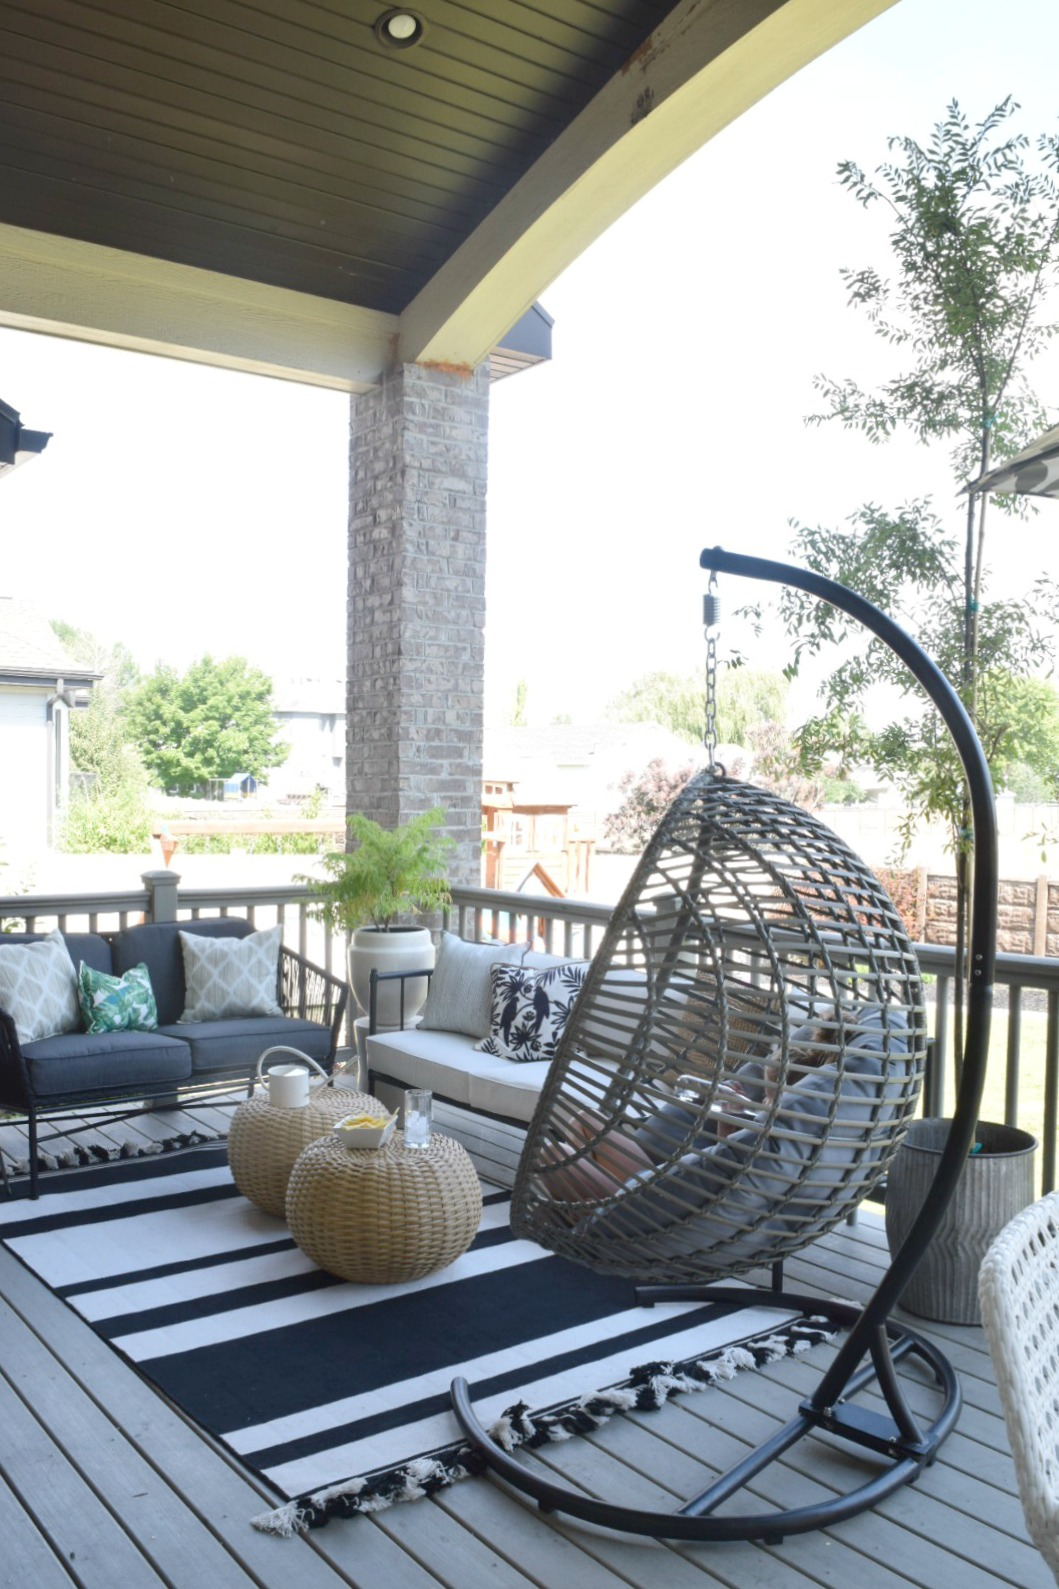 Outdoor Patio and Living Space with Hanging Chair ... on Living Spaces Patio Set id=27448